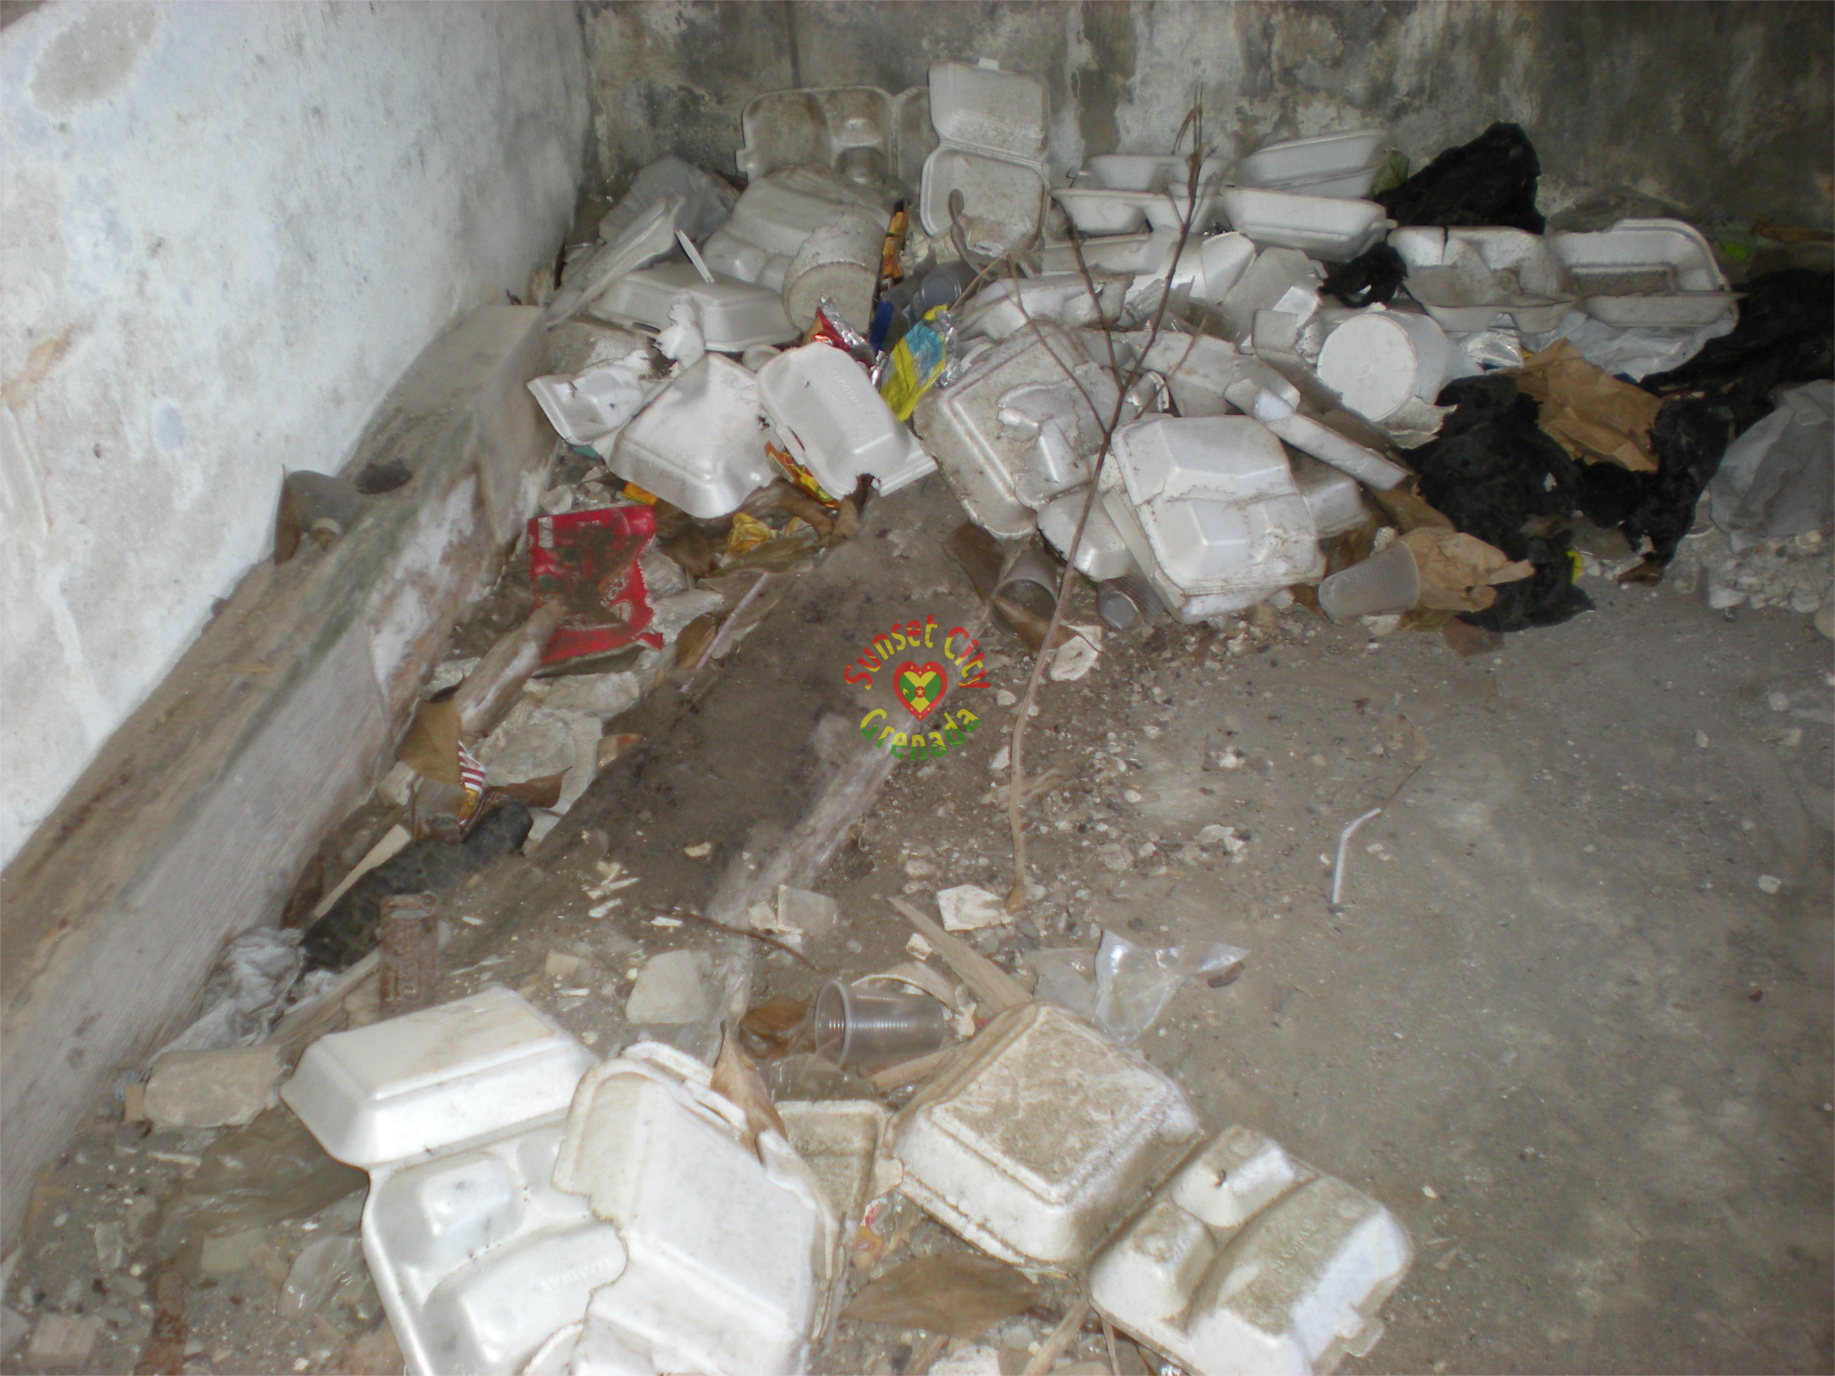 Garbage in abandon building on Queen Street